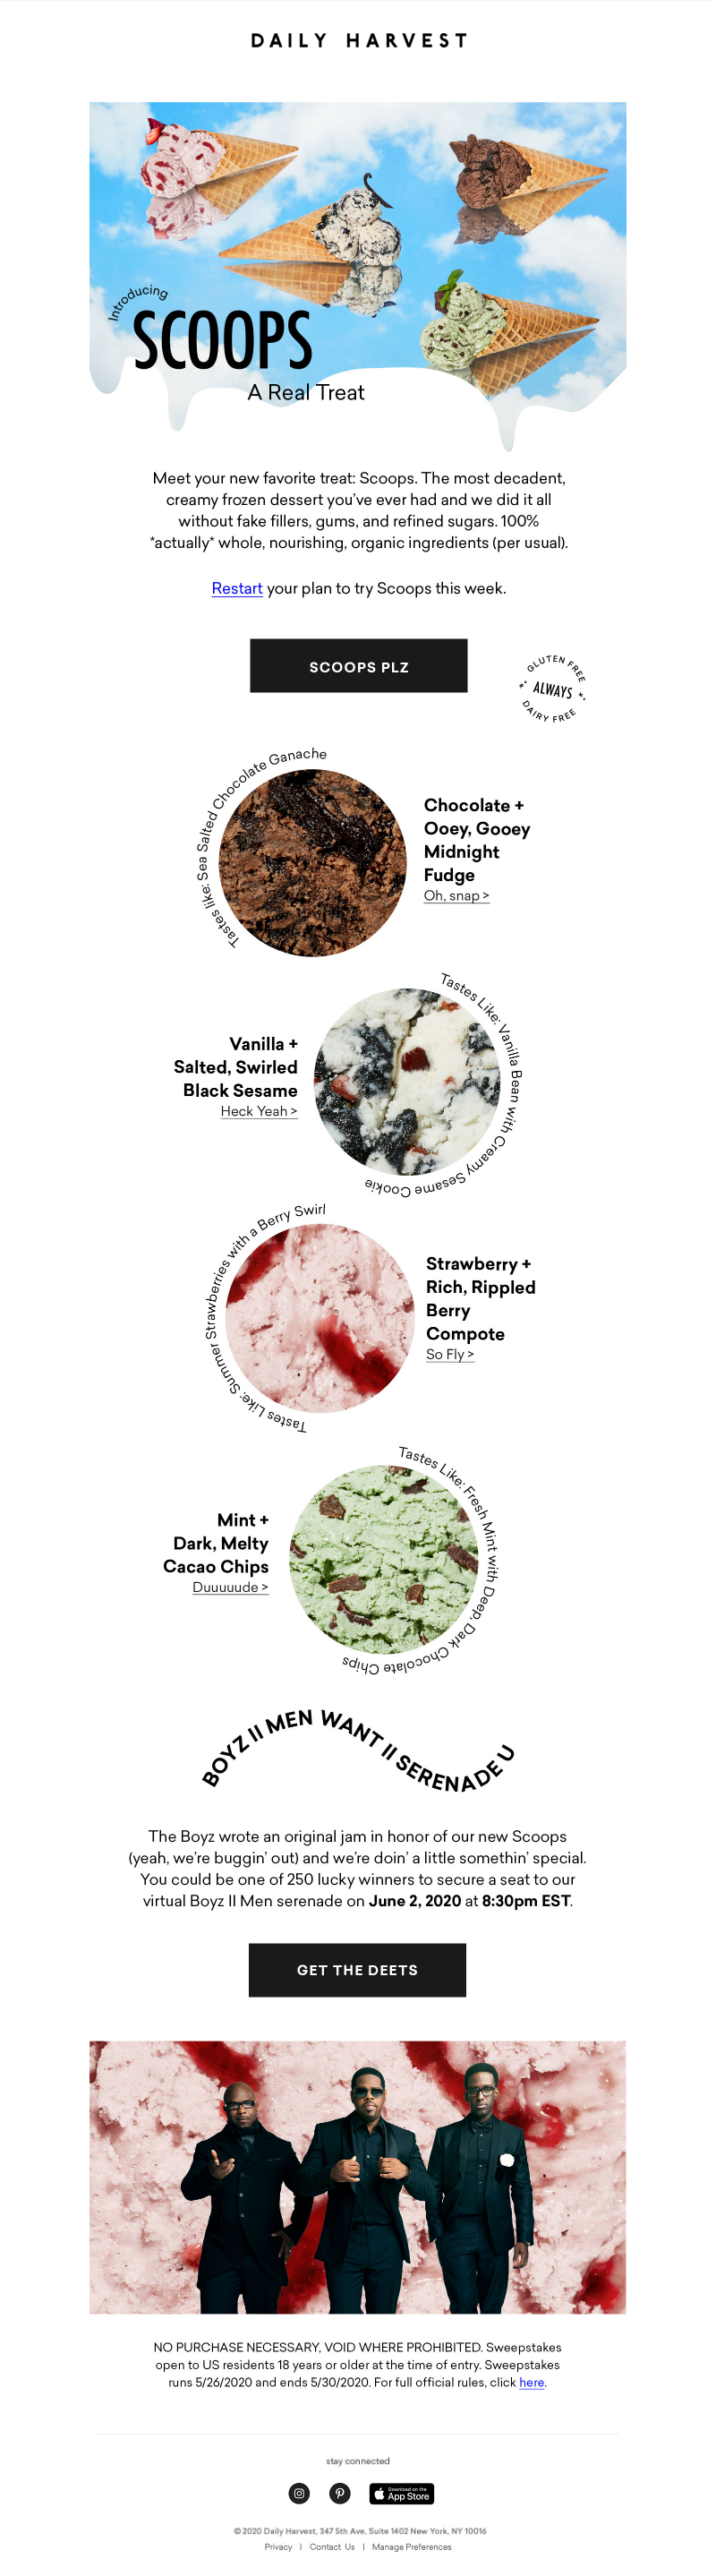 Daily Harvest Introducing Scoops A Real Treat Meet your new favorite treat: